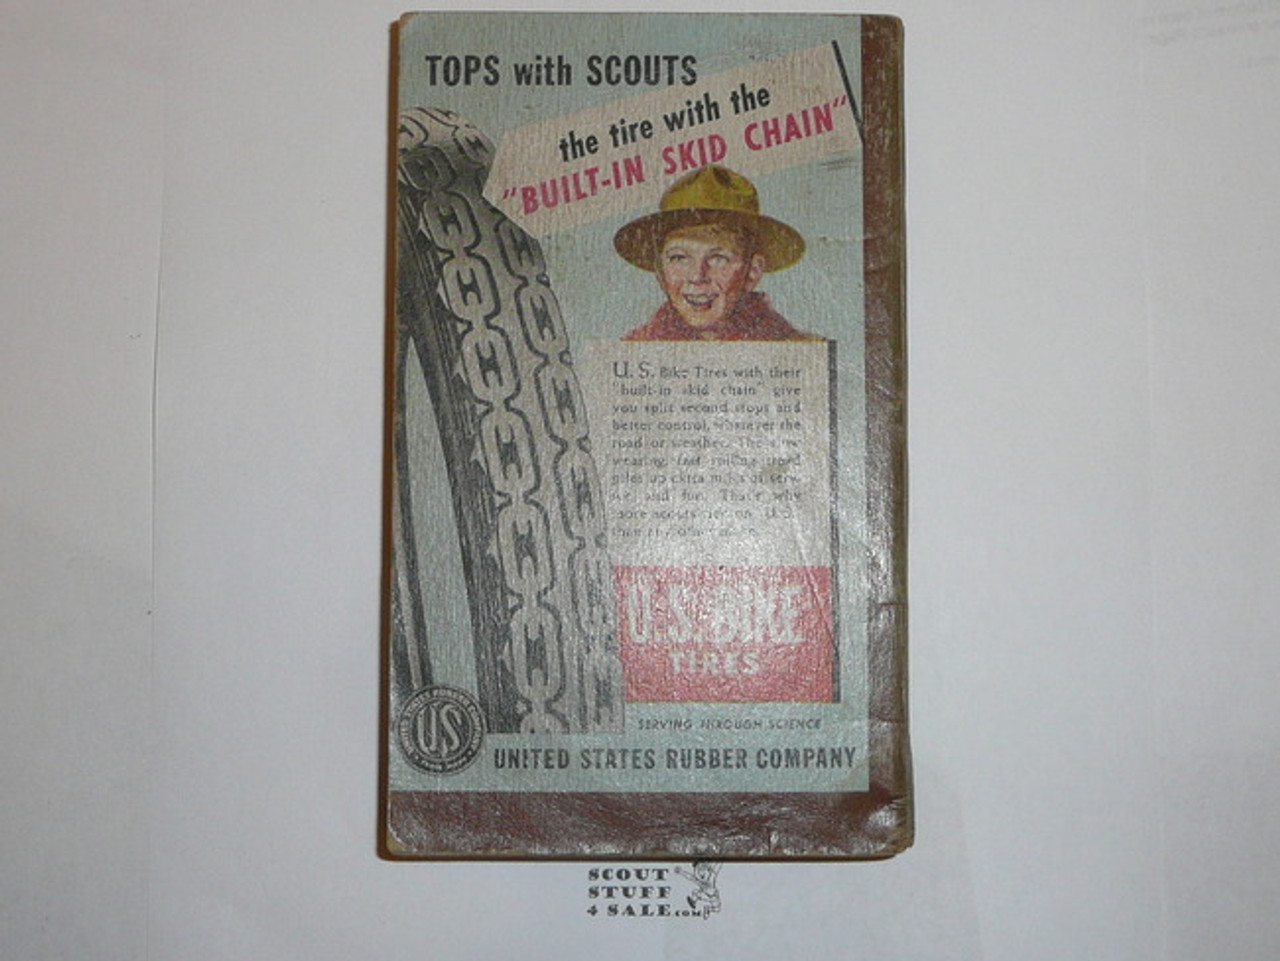 1948 Boy Scout Handbook, Fifth Edition, First Printing, Don Ross Cover Artwork, good used condition, five stars on last page